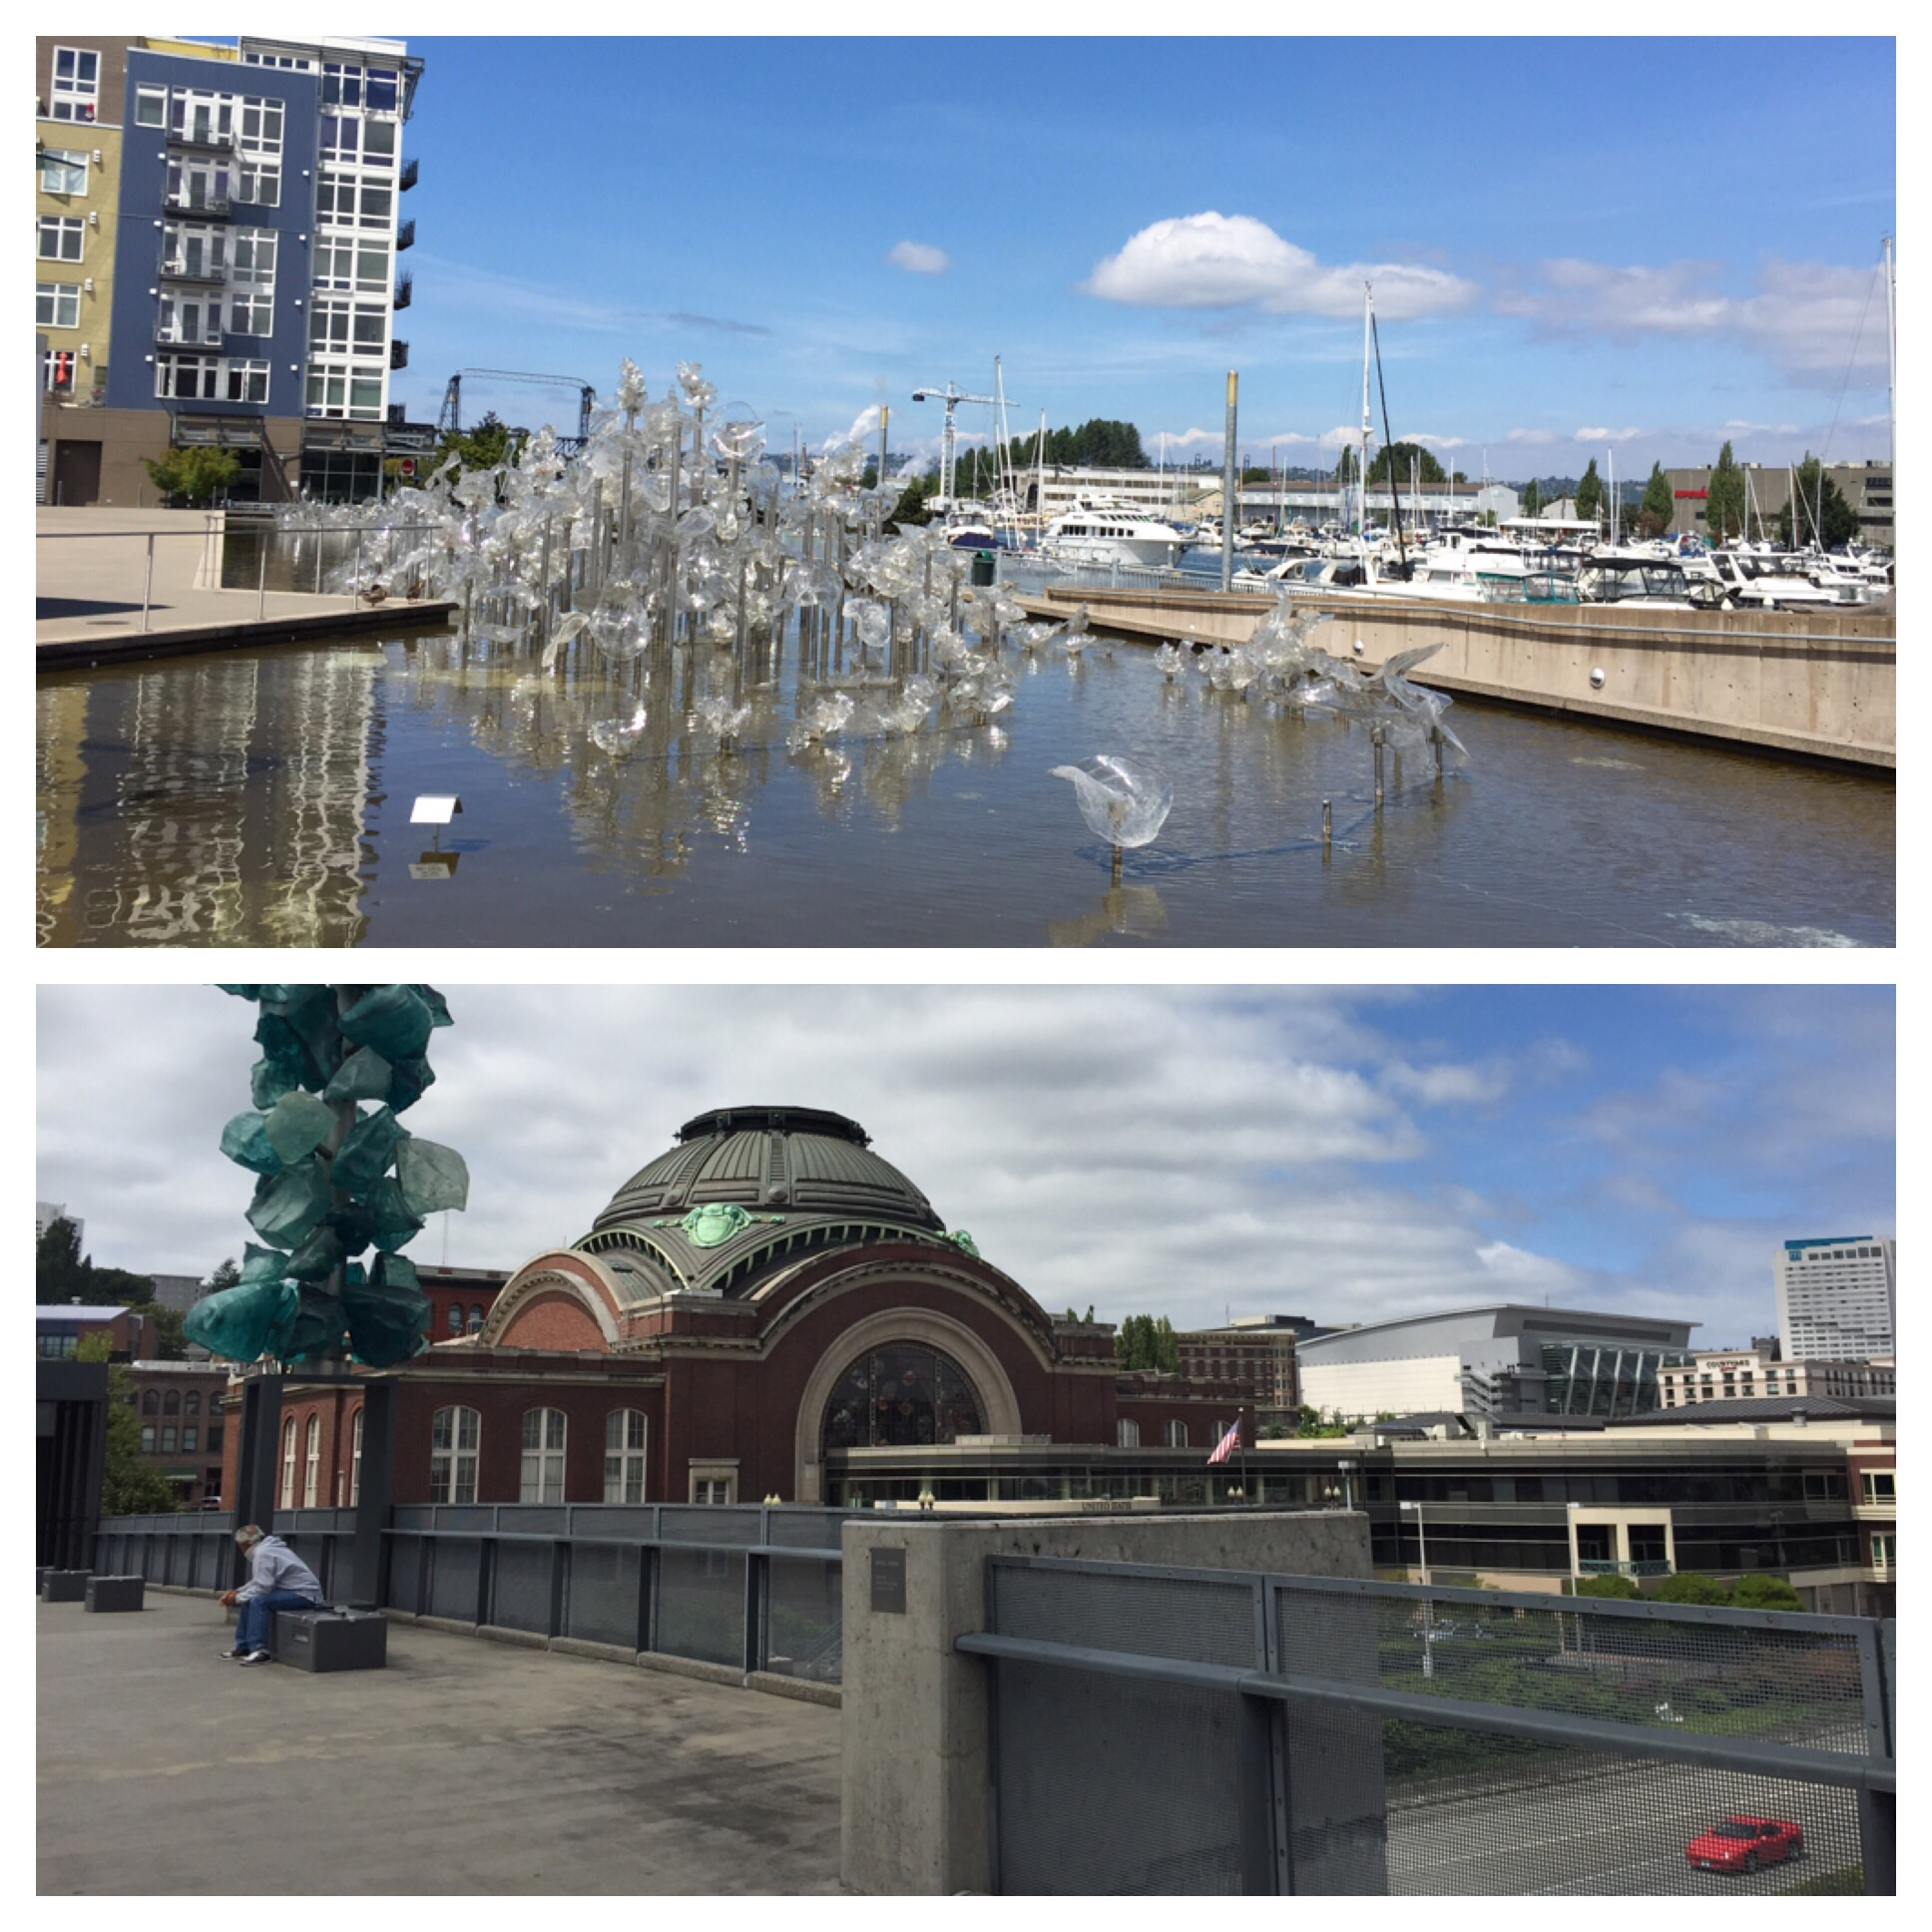 Top is Chihuly sculpture in front of the museum and bottom is the art bridge extending over the highway - very cool!